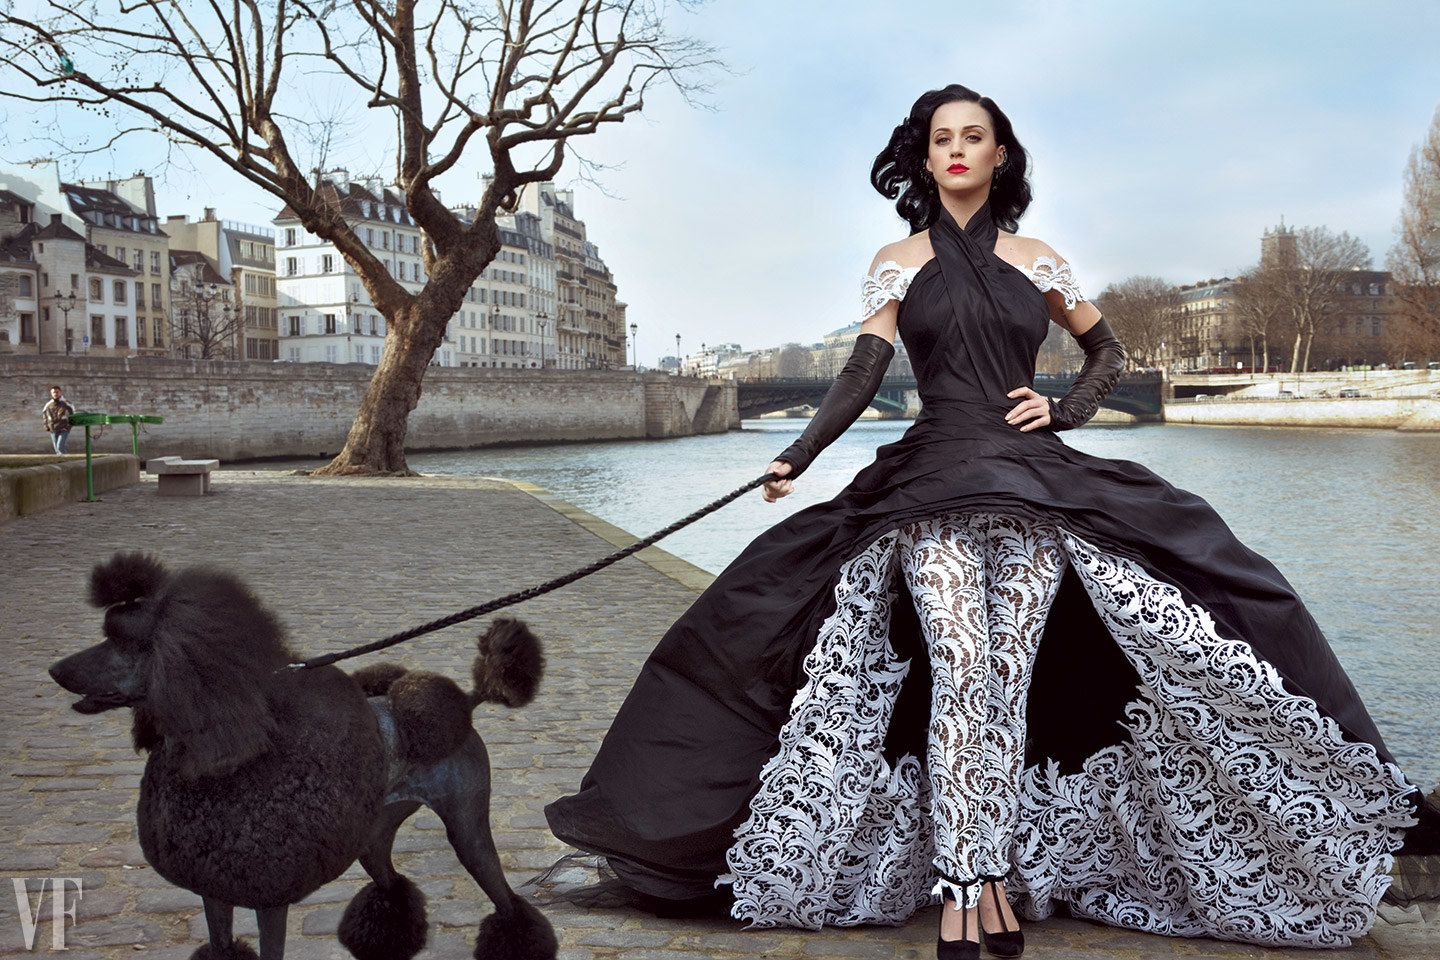 Katy Perry photo for Vanity Fair by Annie Leibovitz